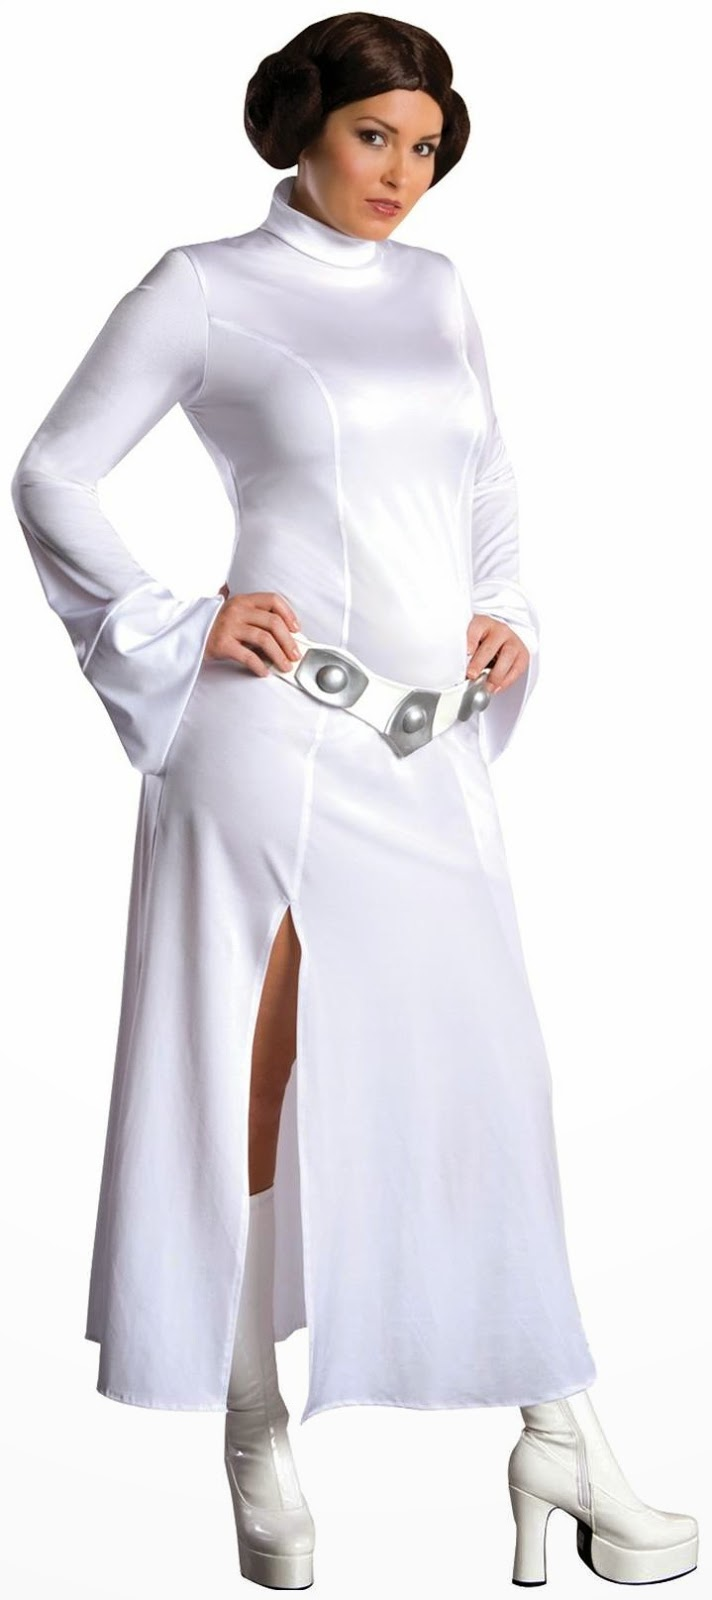 princess_Leia_starwars_costume